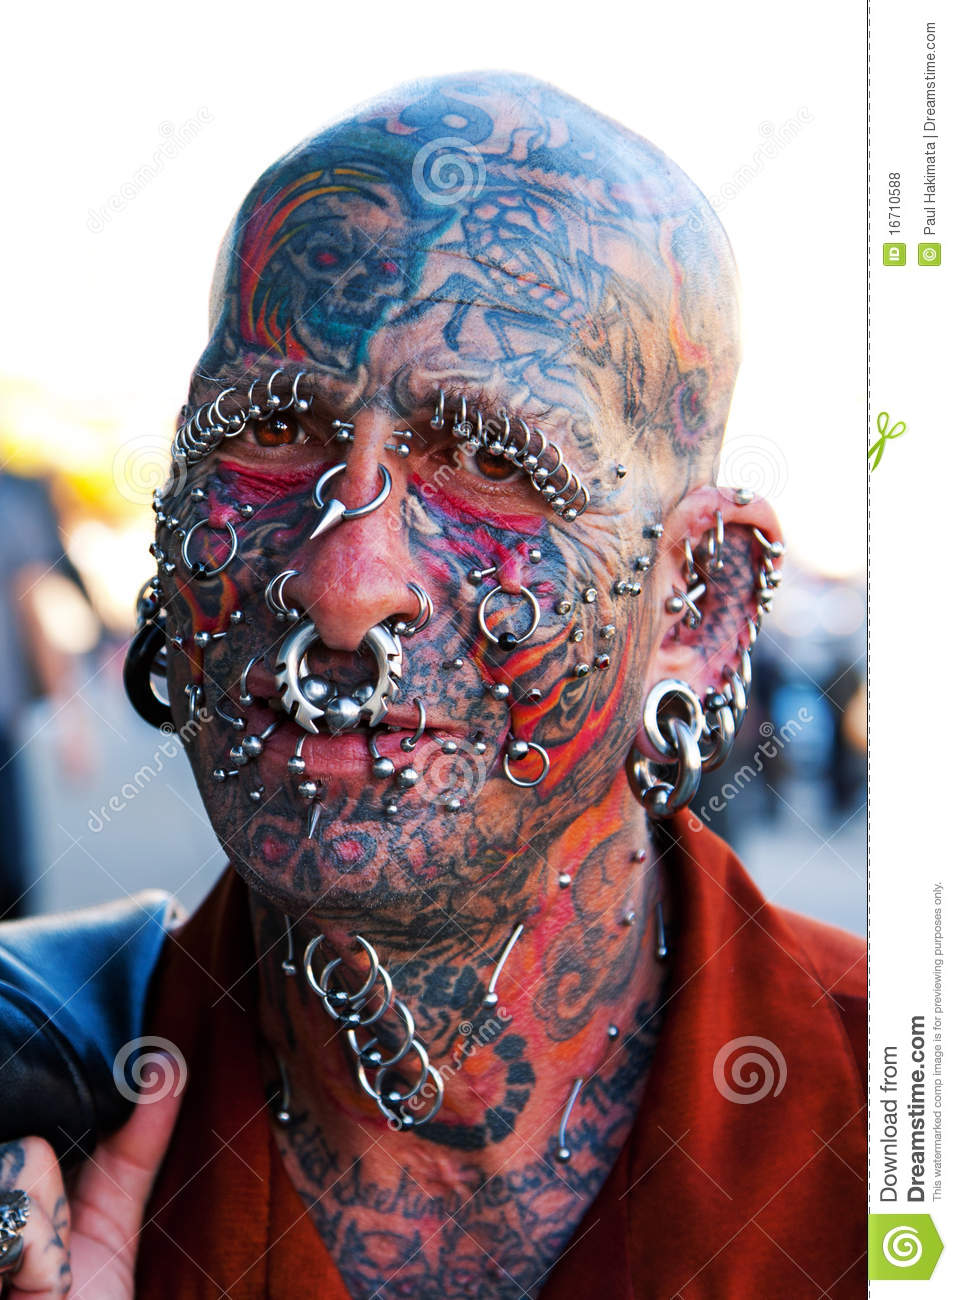 Face With Tattoos And Piercings Editorial Stock Photo Image Of Skull Text 16710588